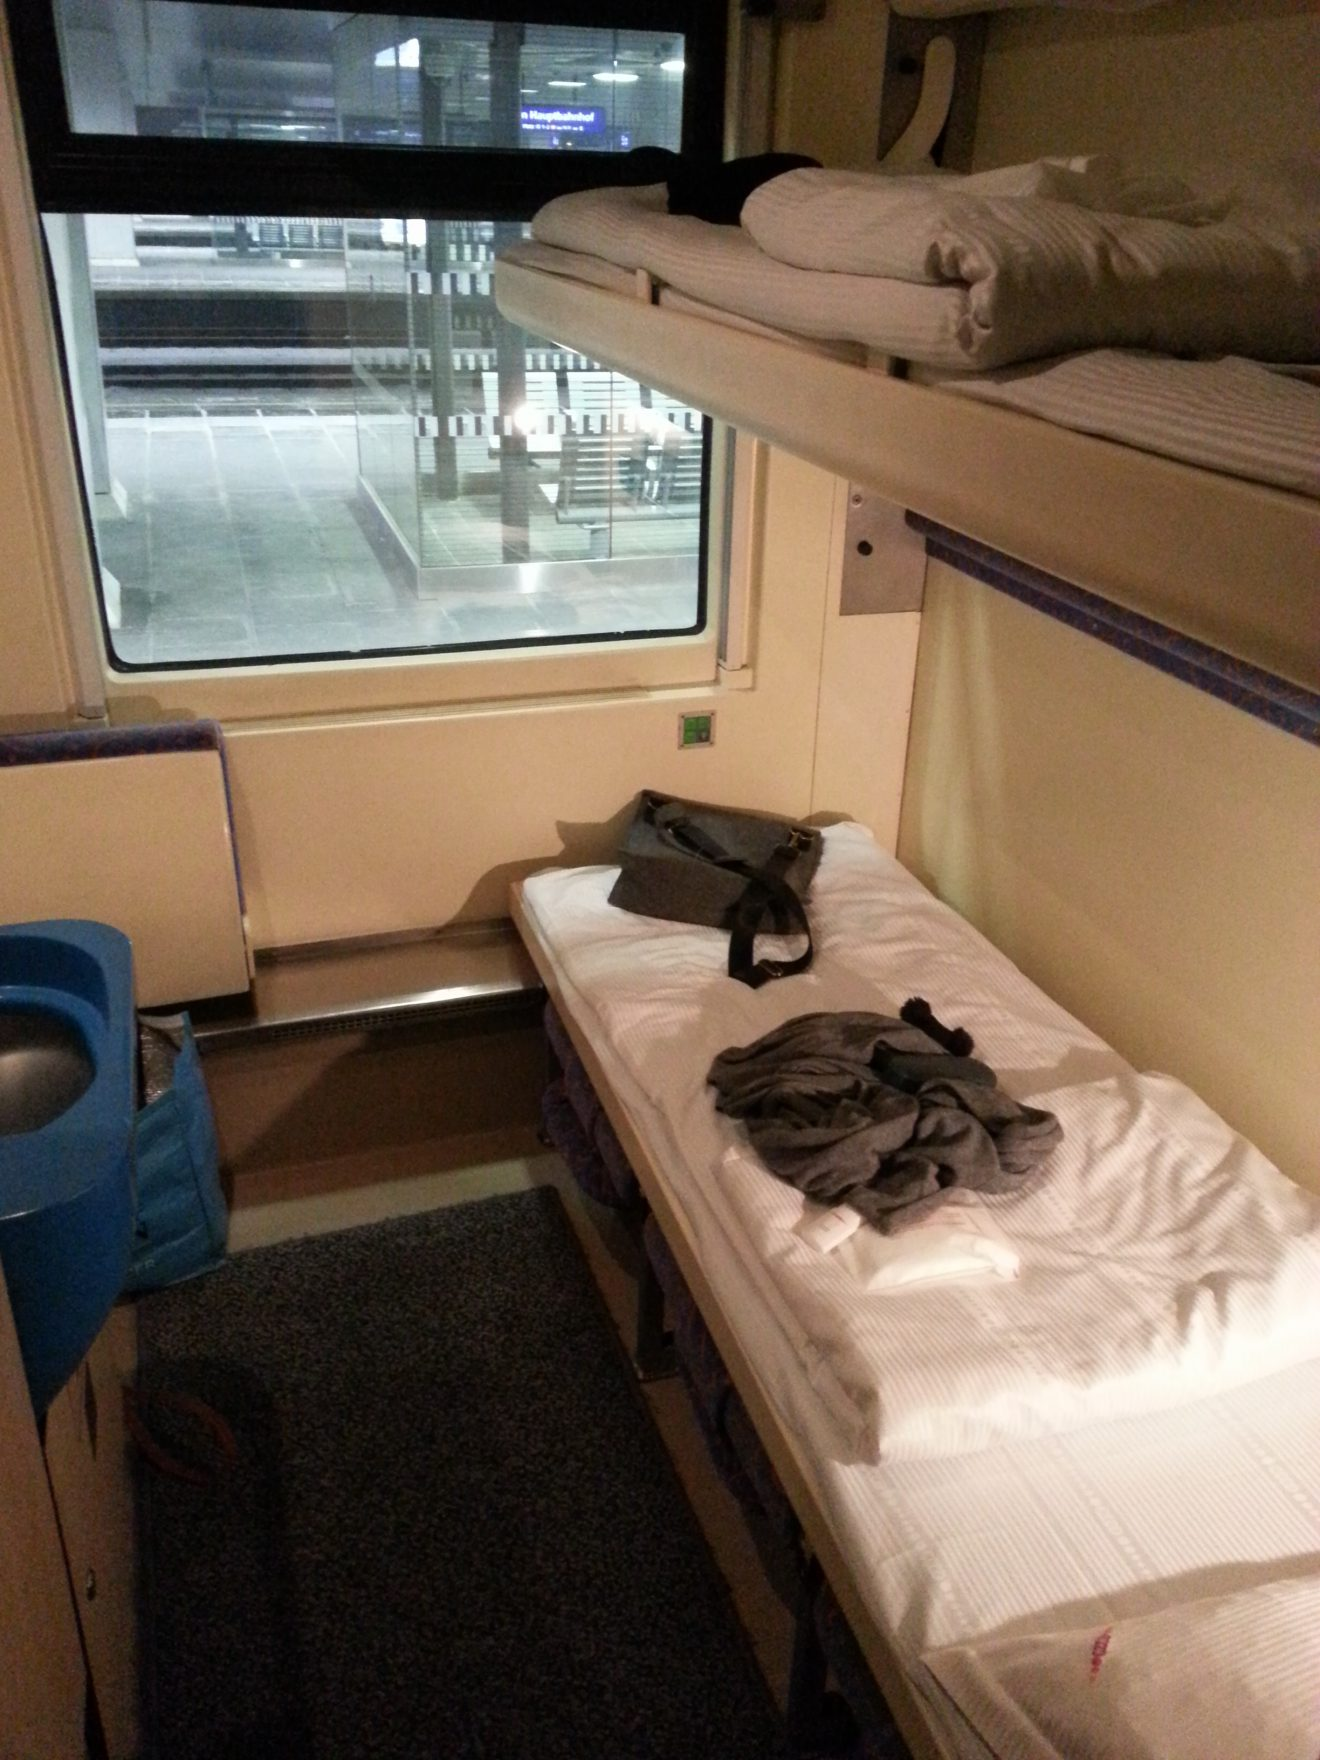 Sleeping on a night train